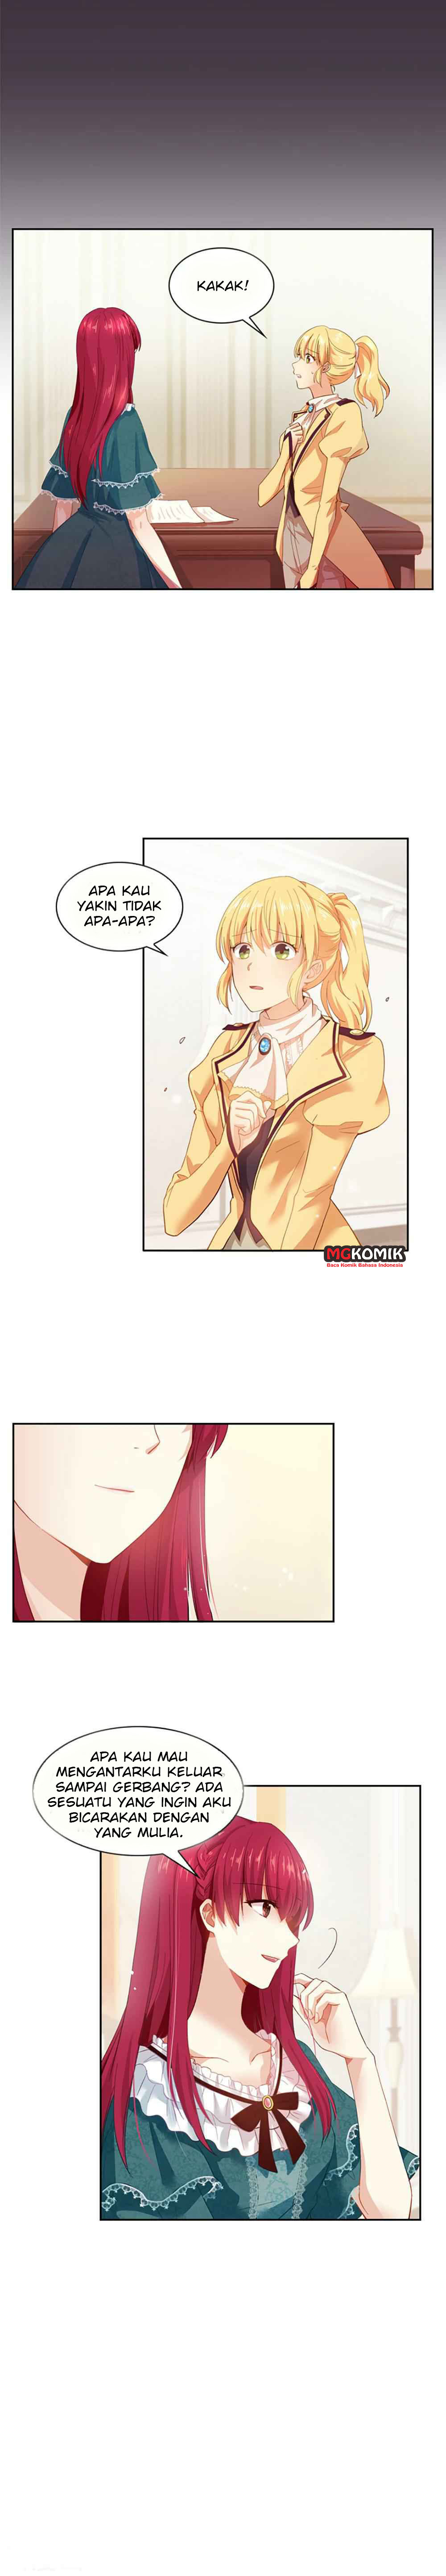 Spoiler Manhua The Evil Lady Will Change 2